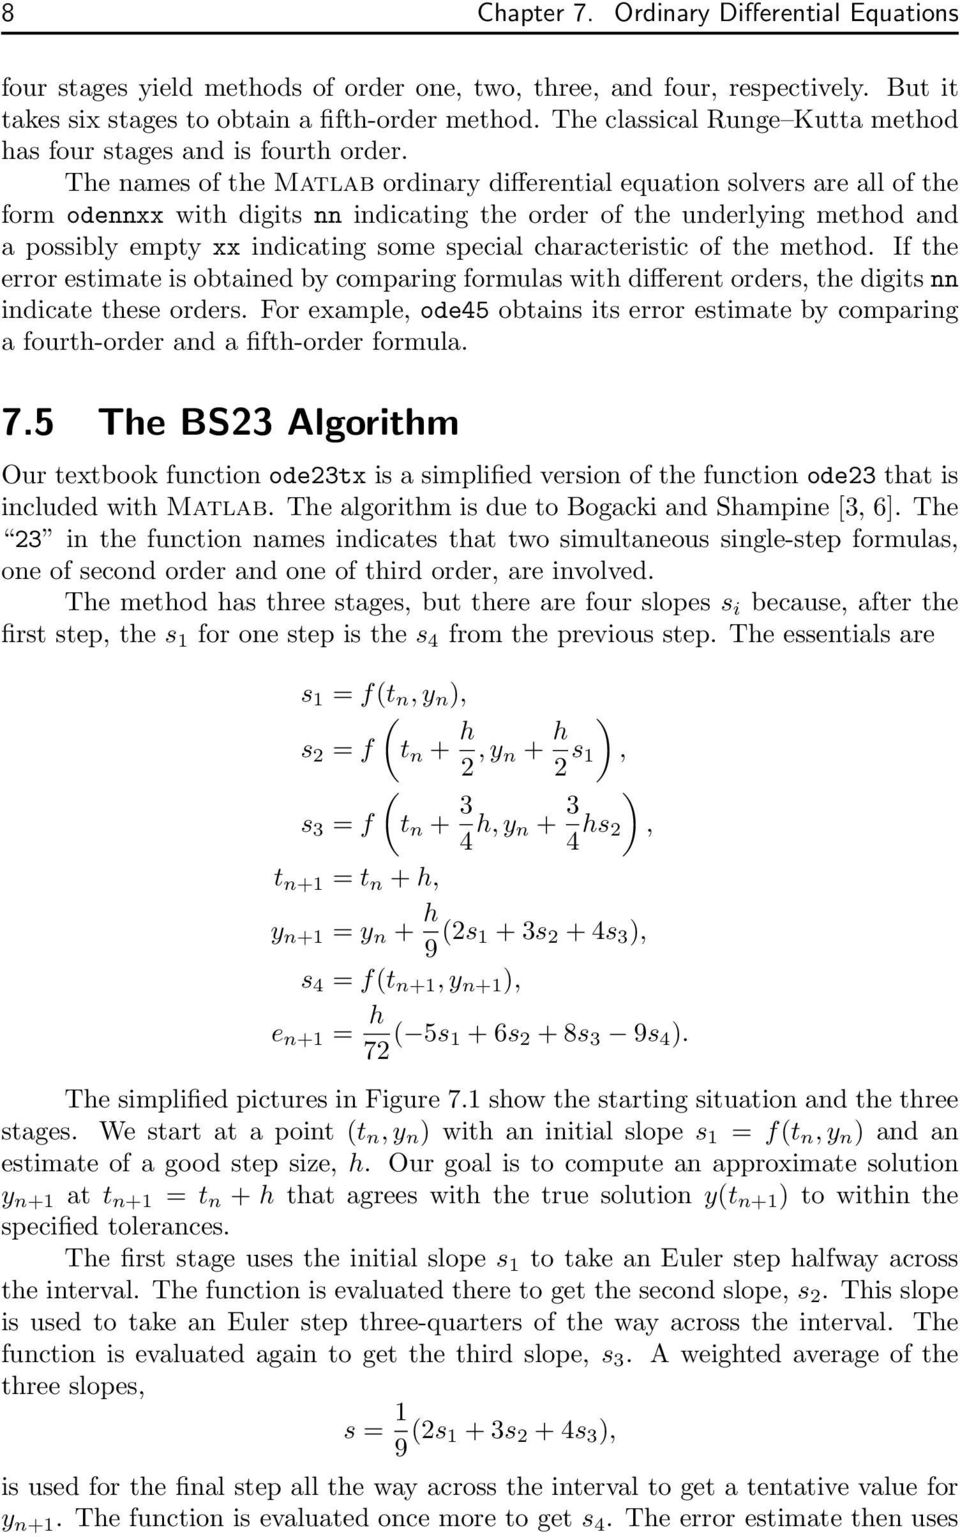 Ordinary Differential Equations - PDF